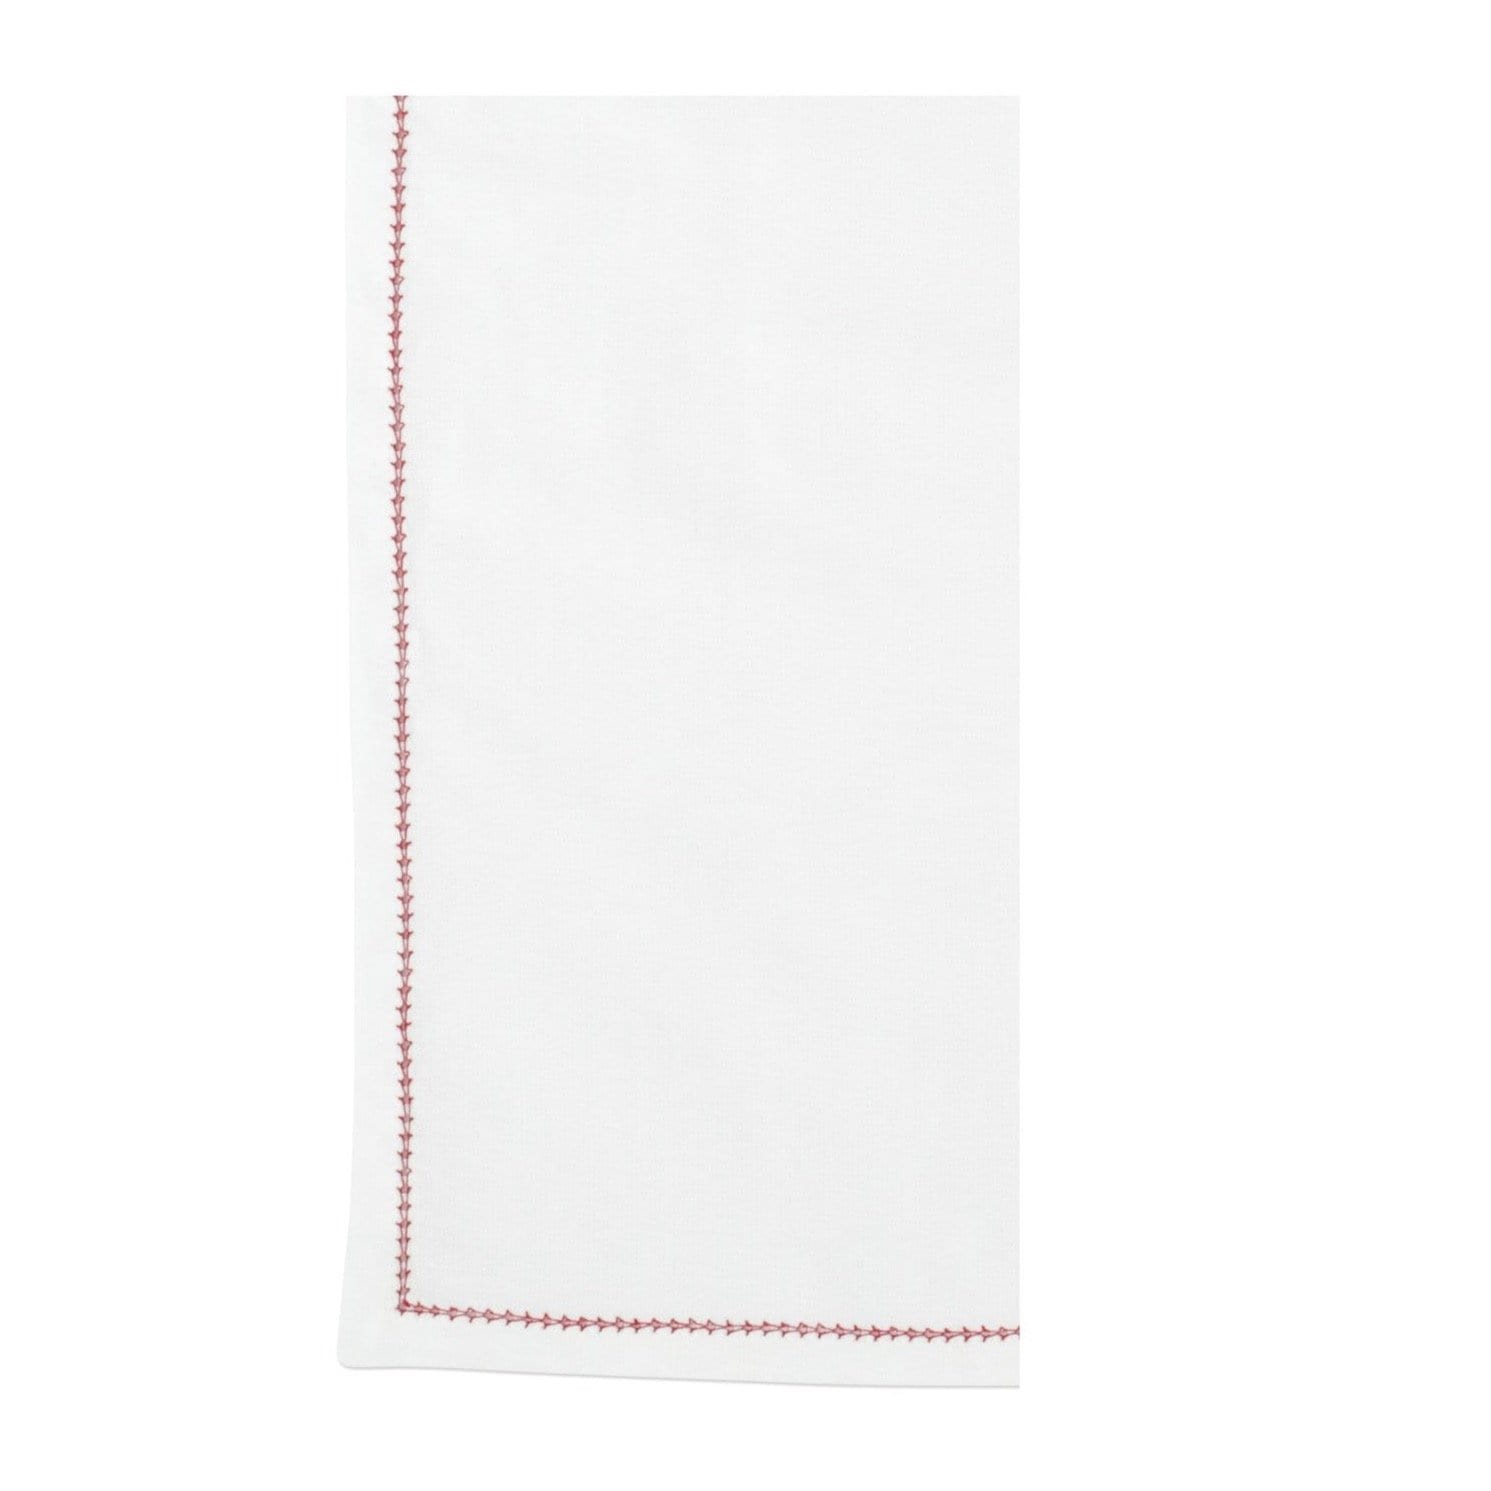 Vietri Cotone Linens Napkins with Stitching - Ivory & Red - Set of 4